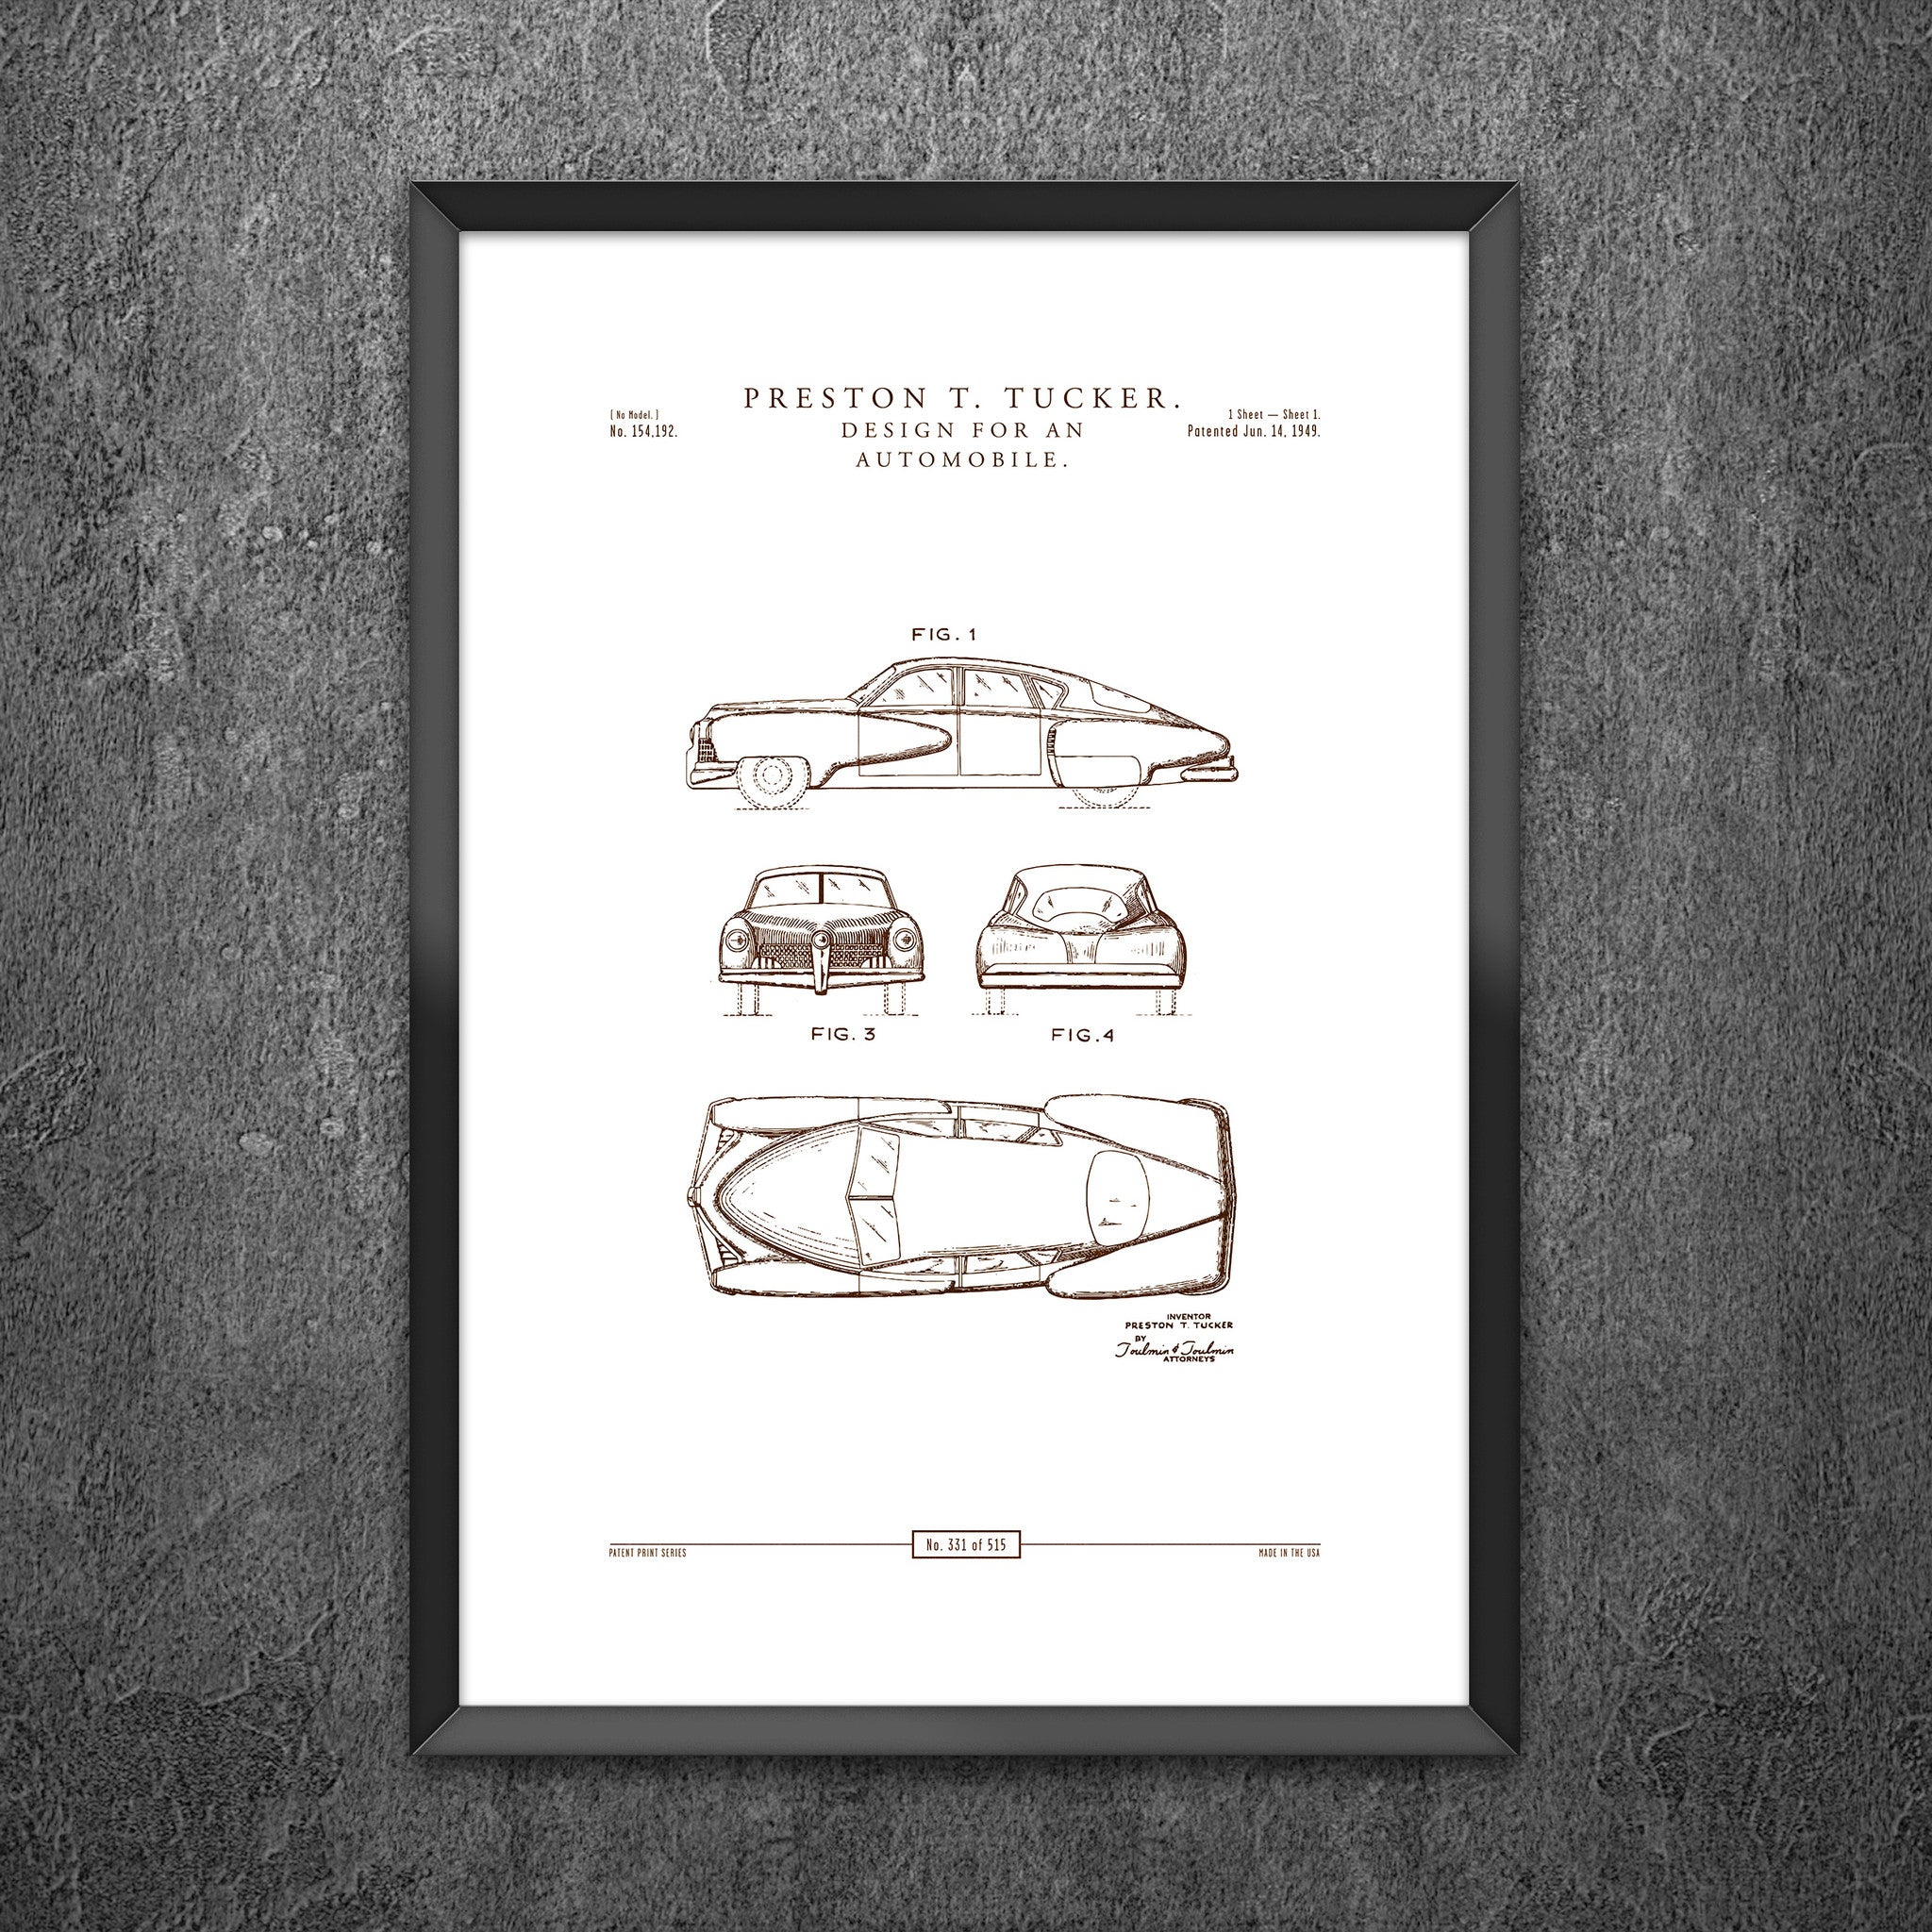 No 331 - Design for an Automobile